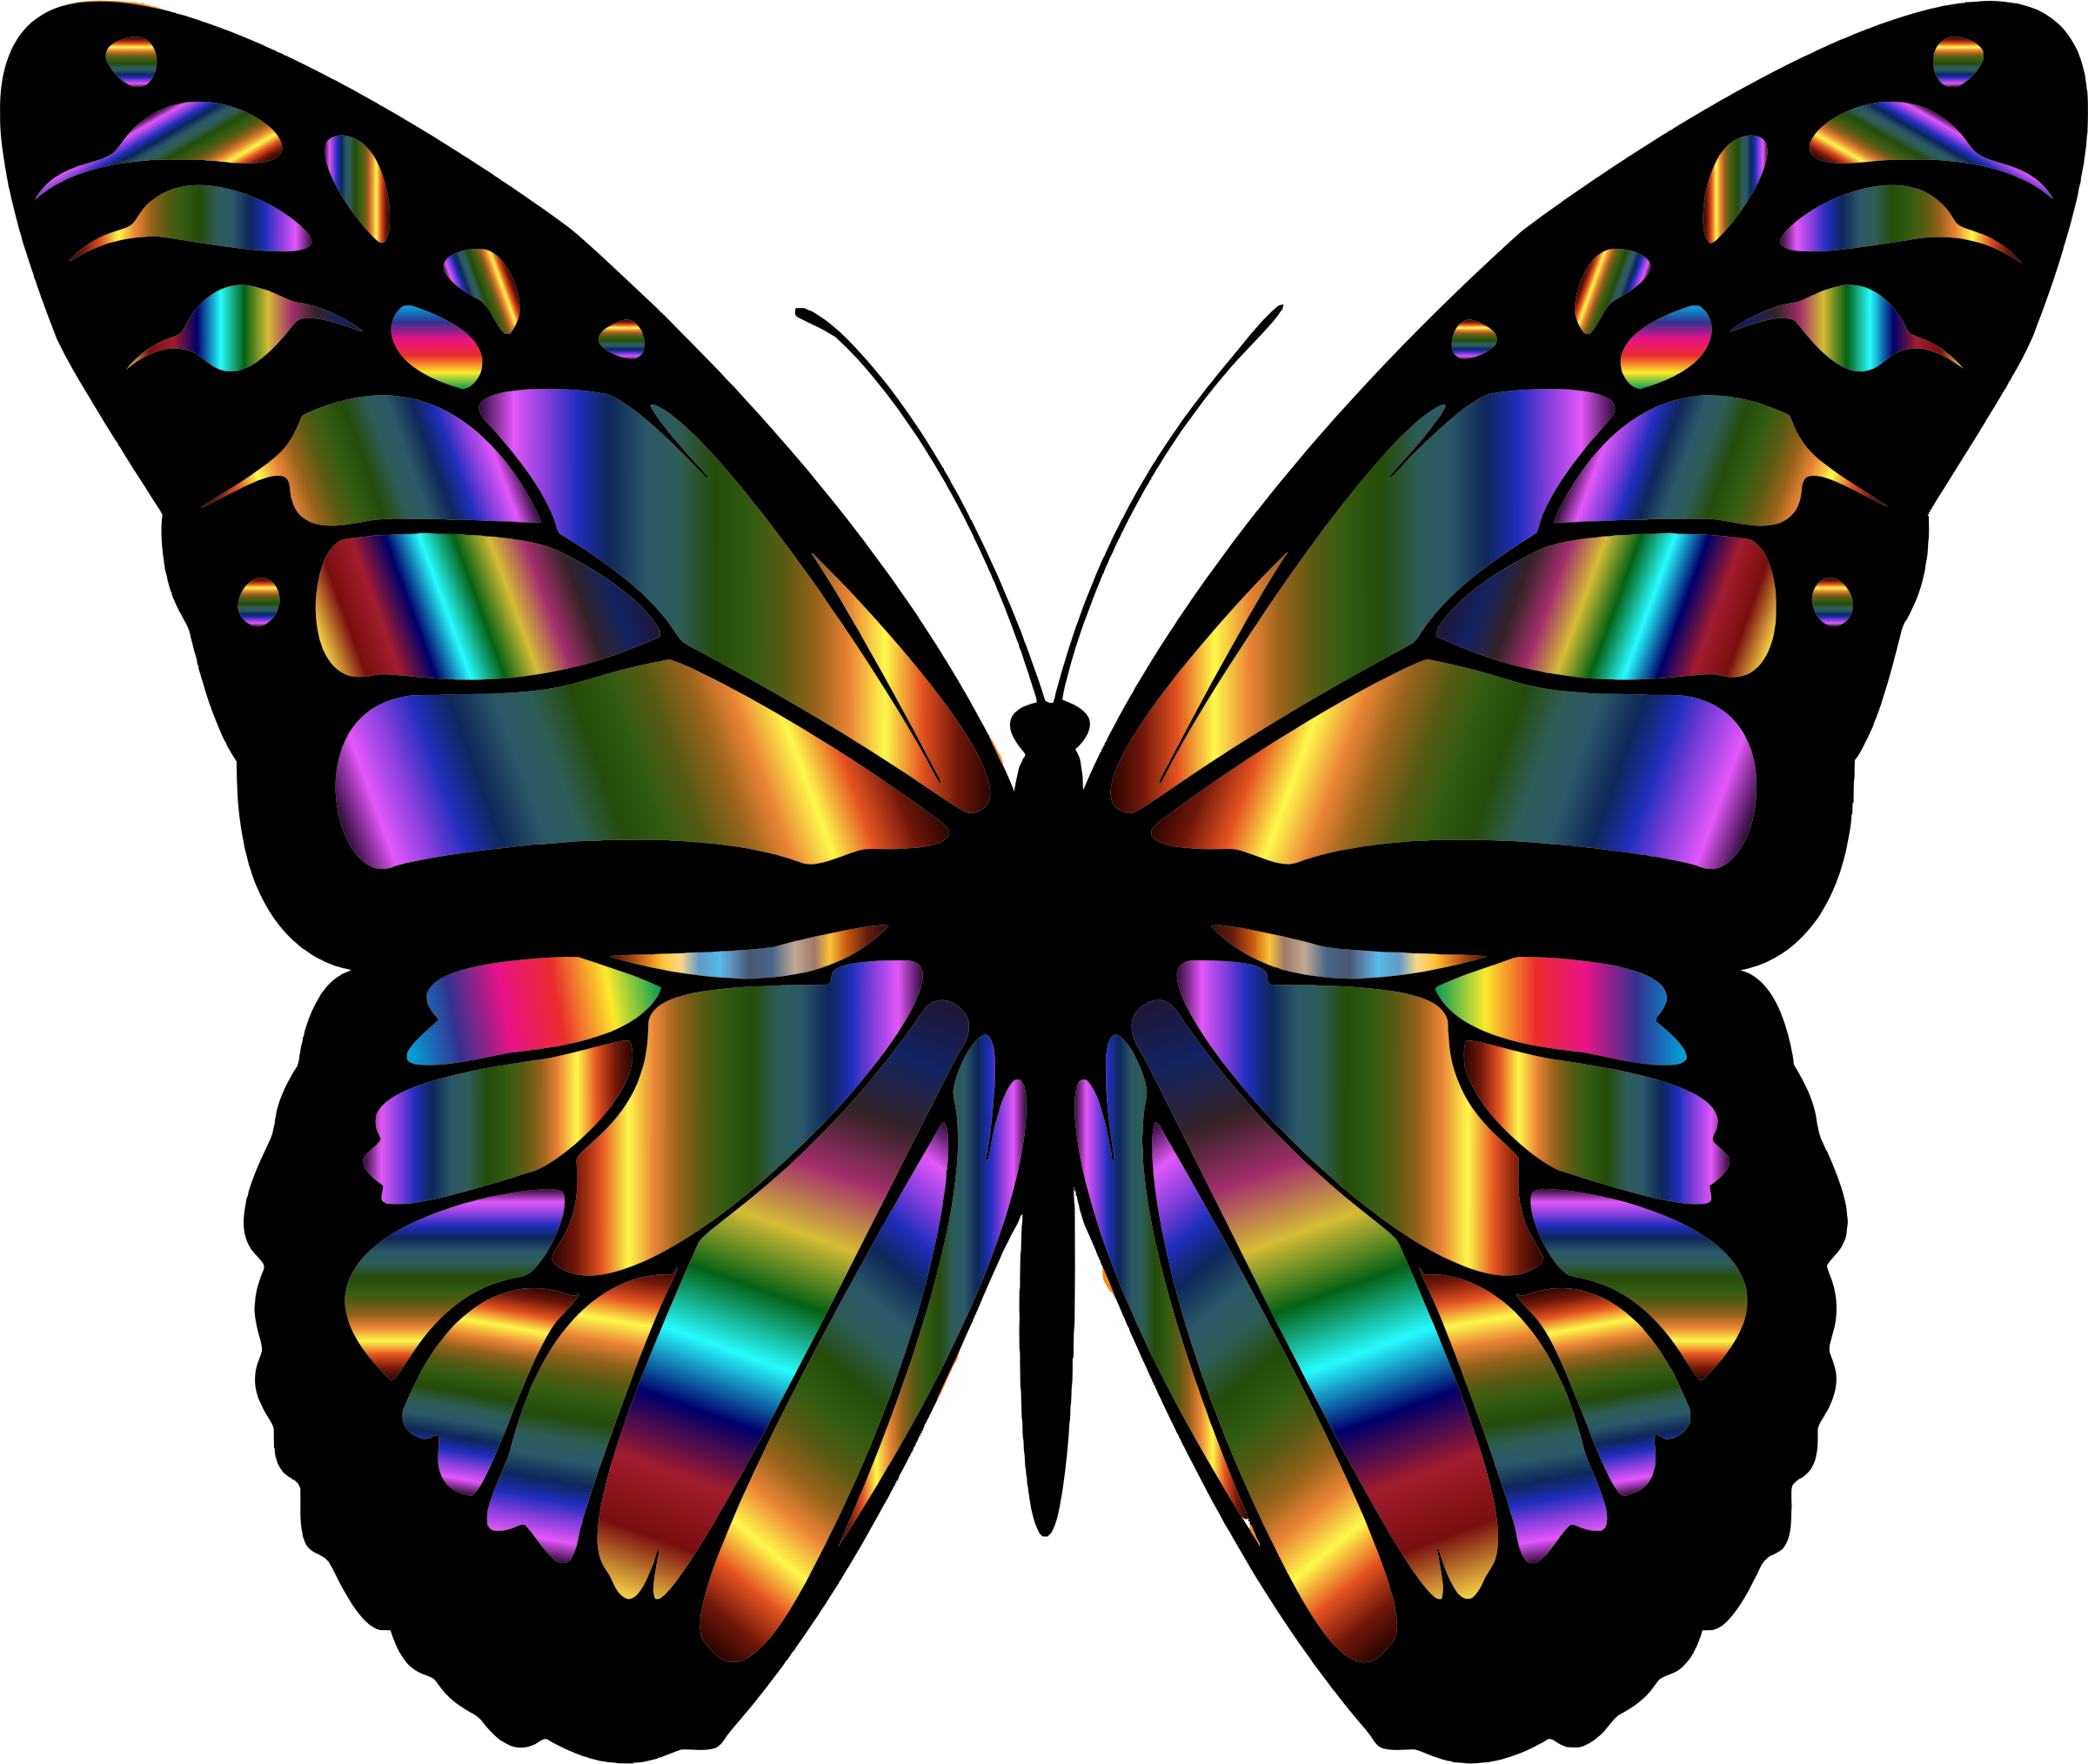 Kite clipart butterfly. Iridescent monarch by gdj